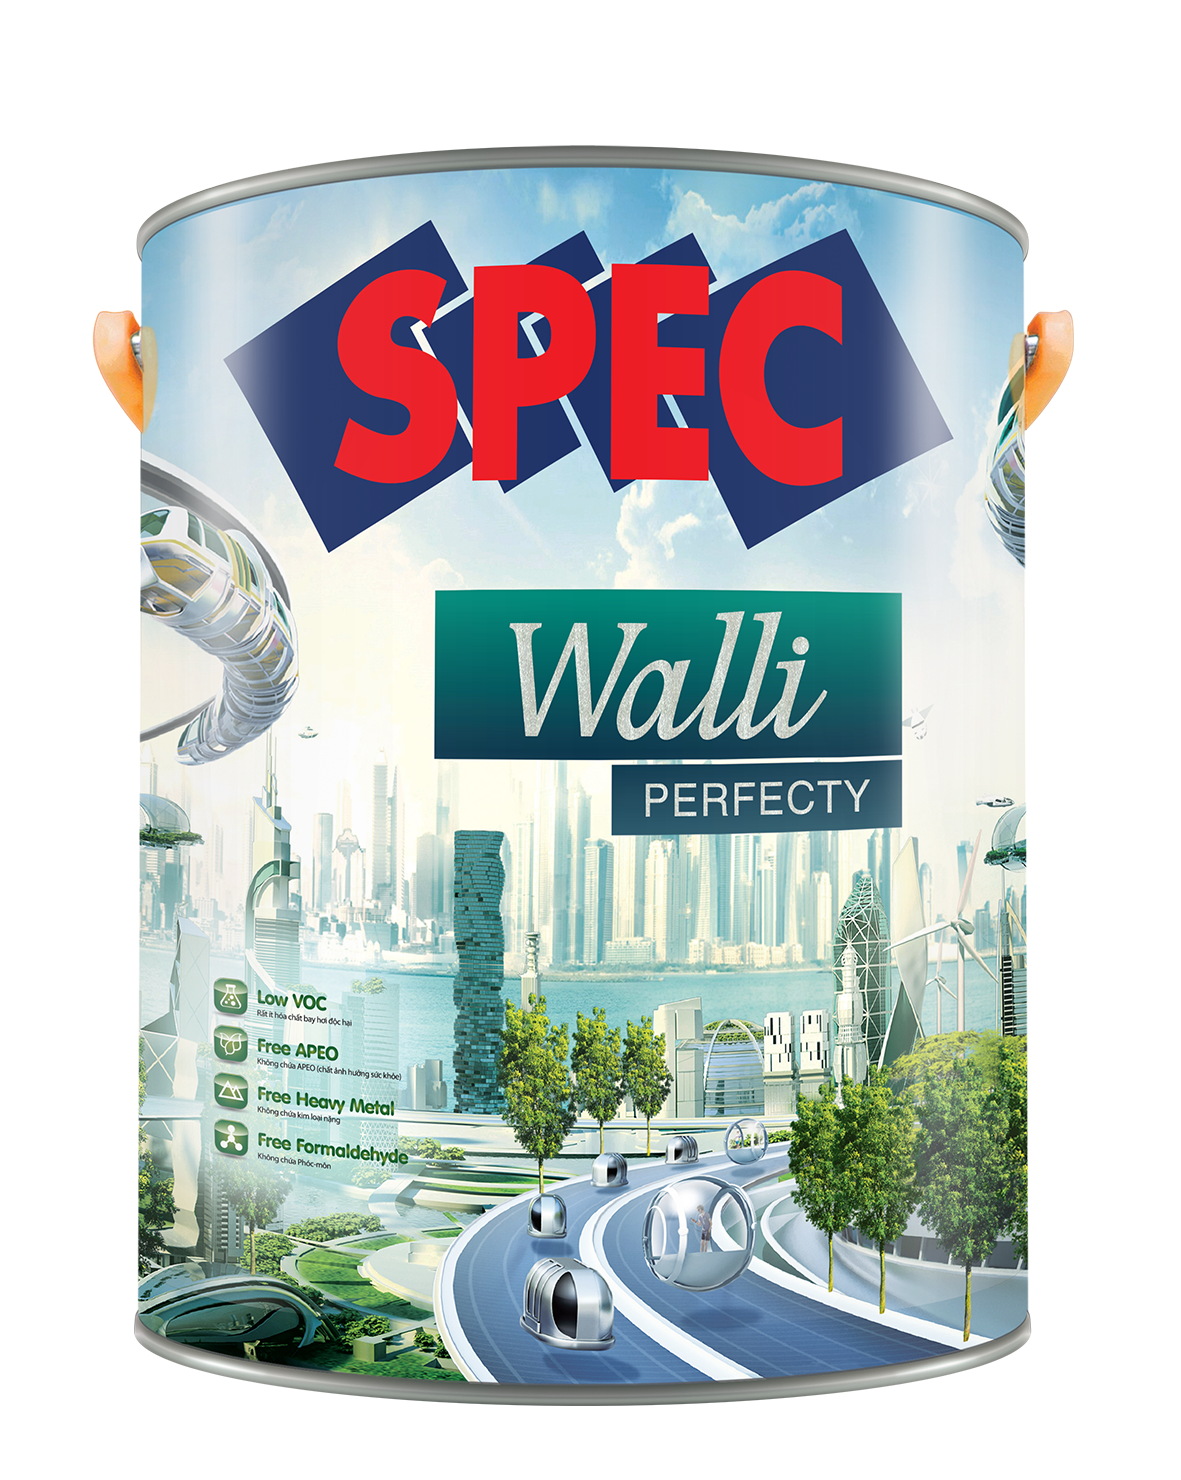 spec-walli-perfecty